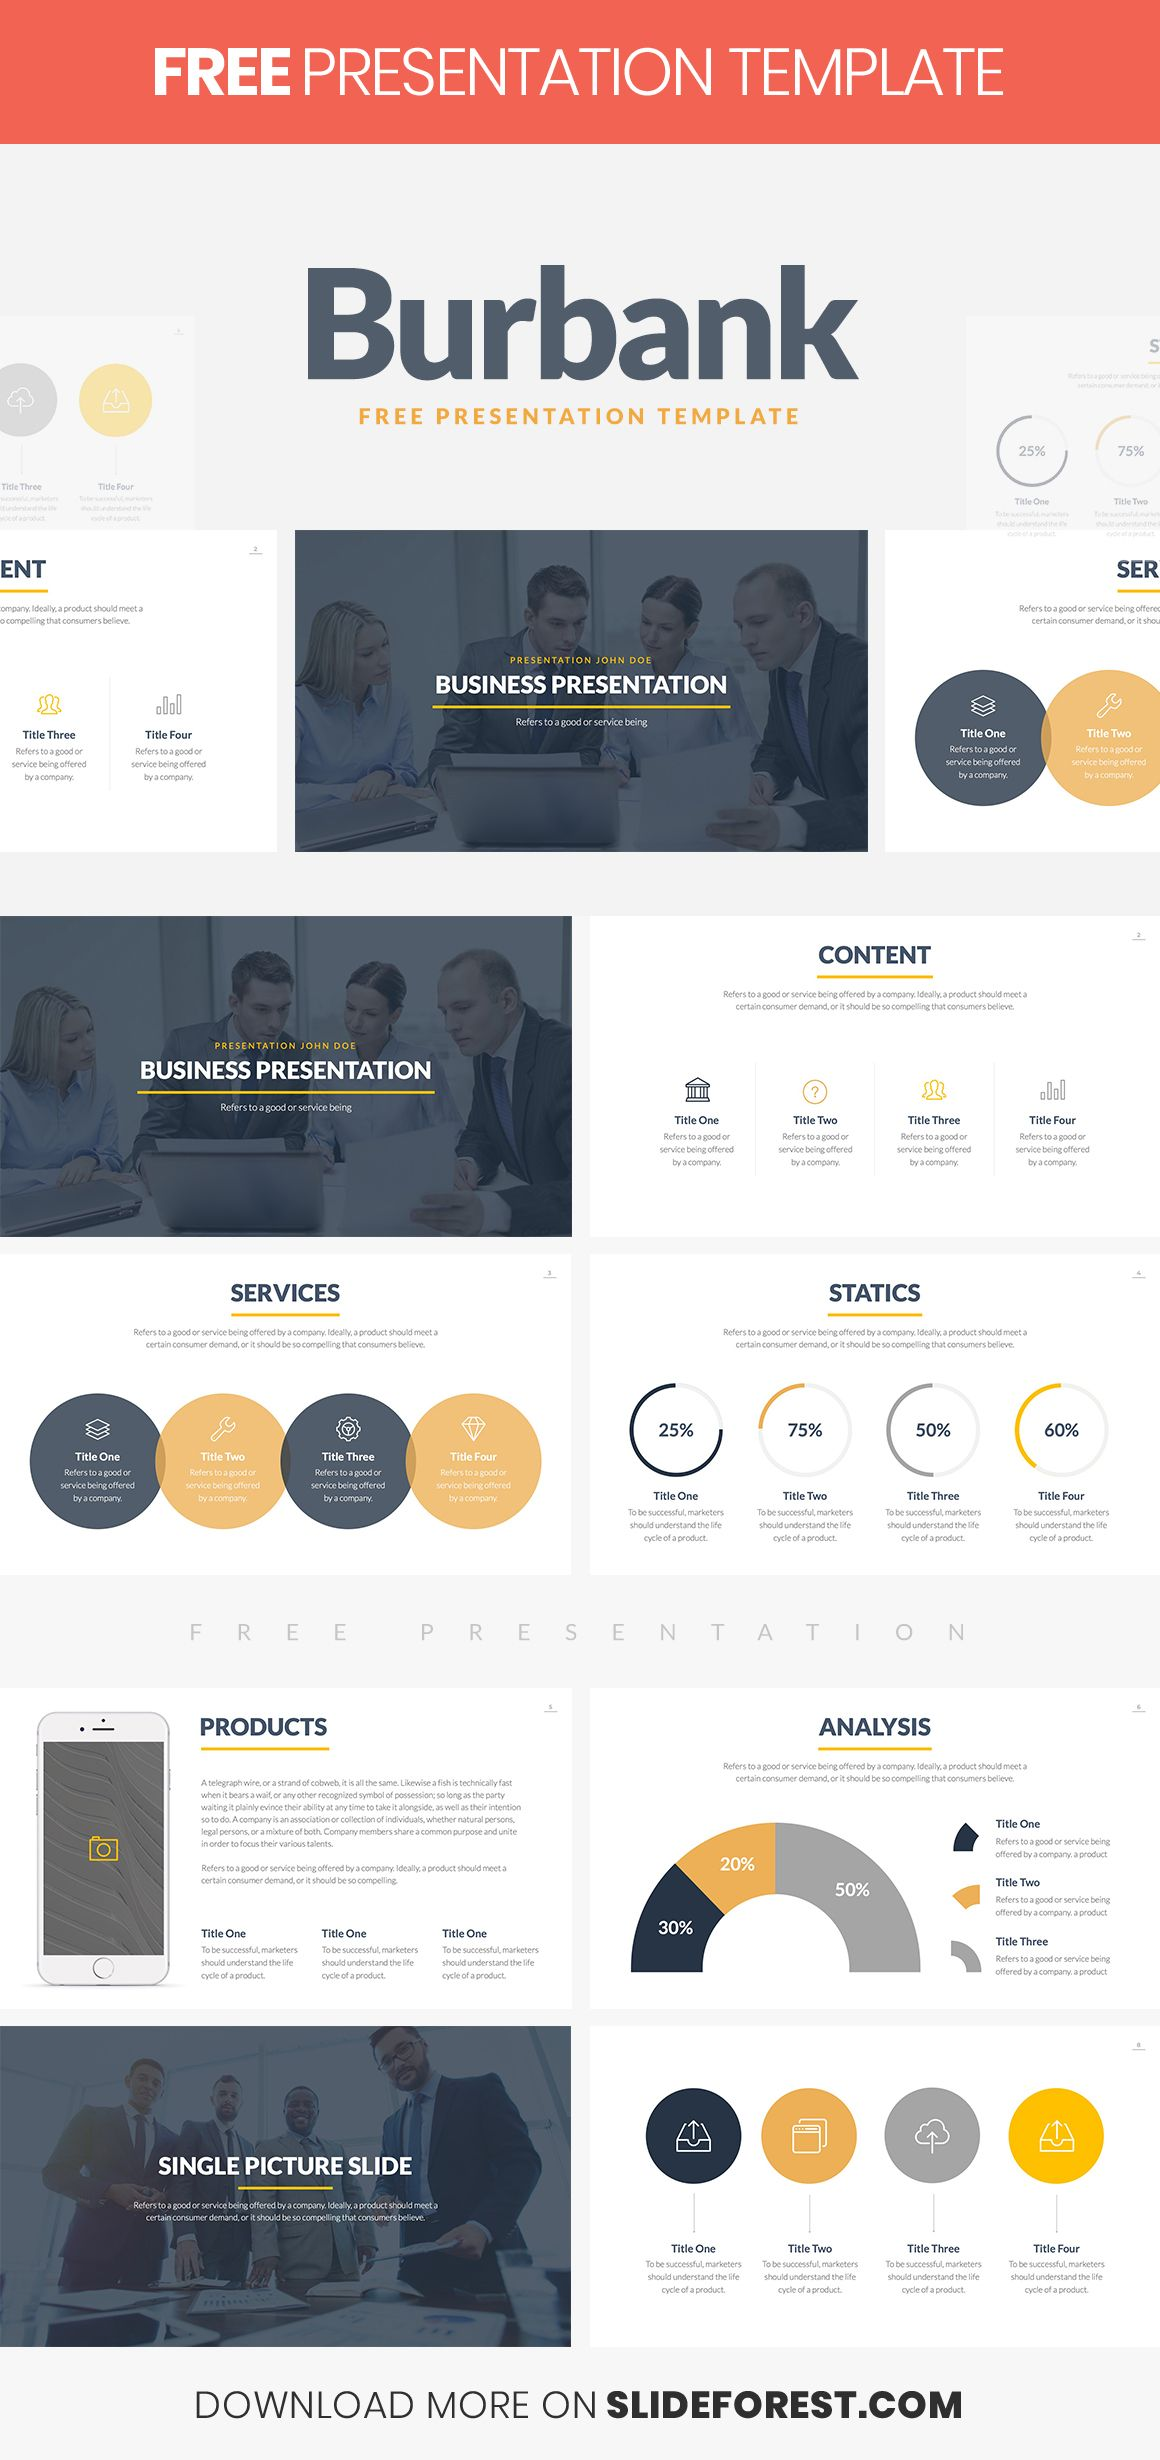 burbank free business proposal presentation template free